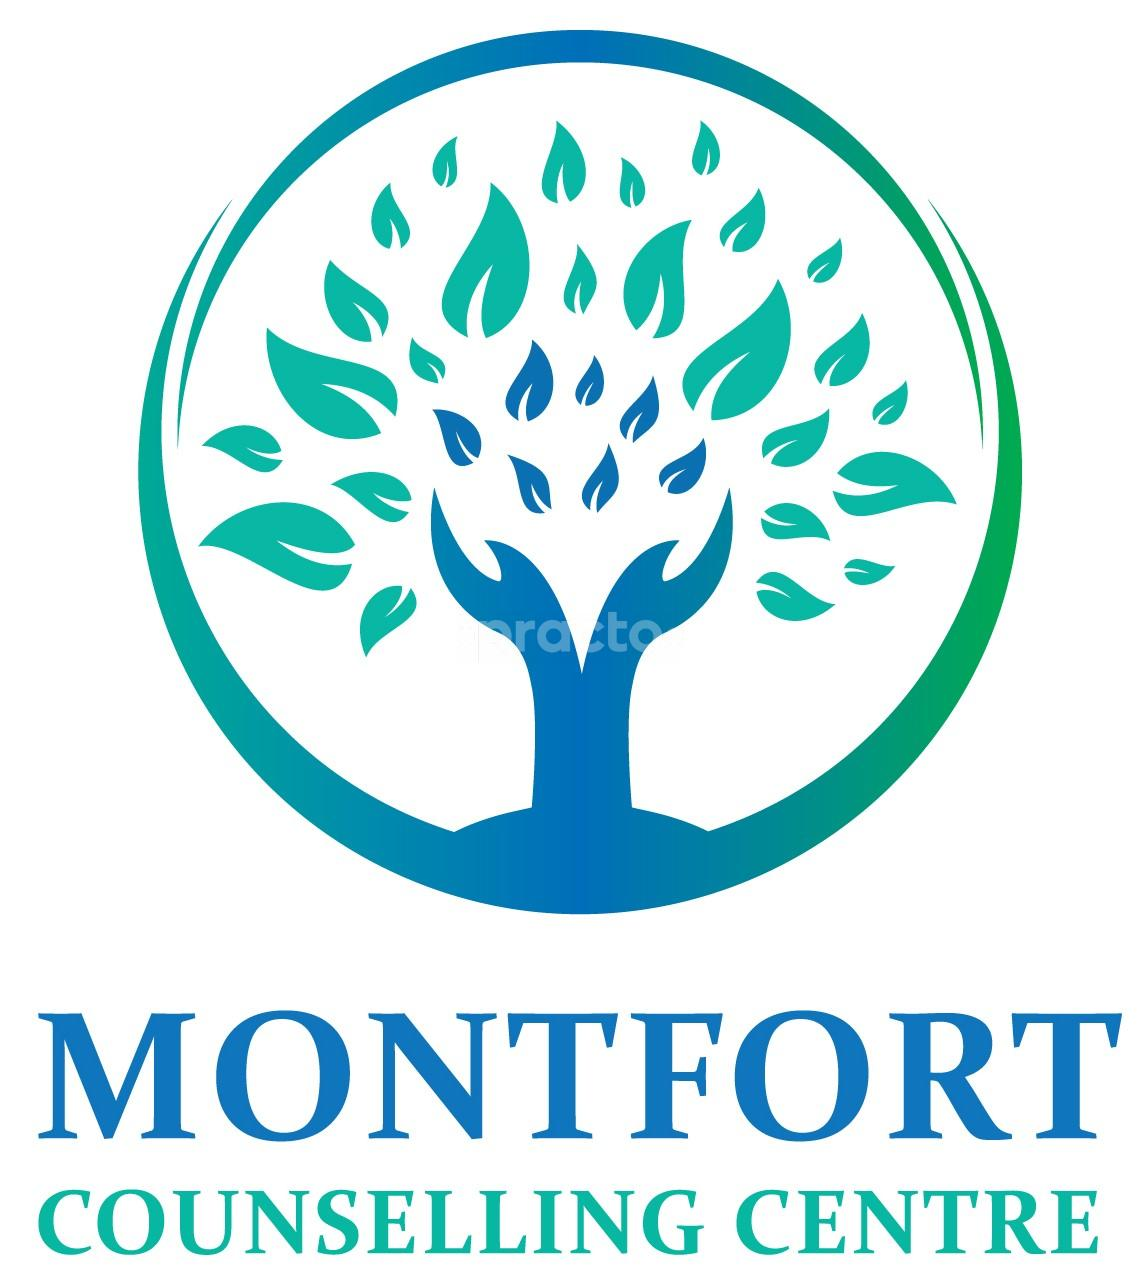 Montfort Counselling Centre